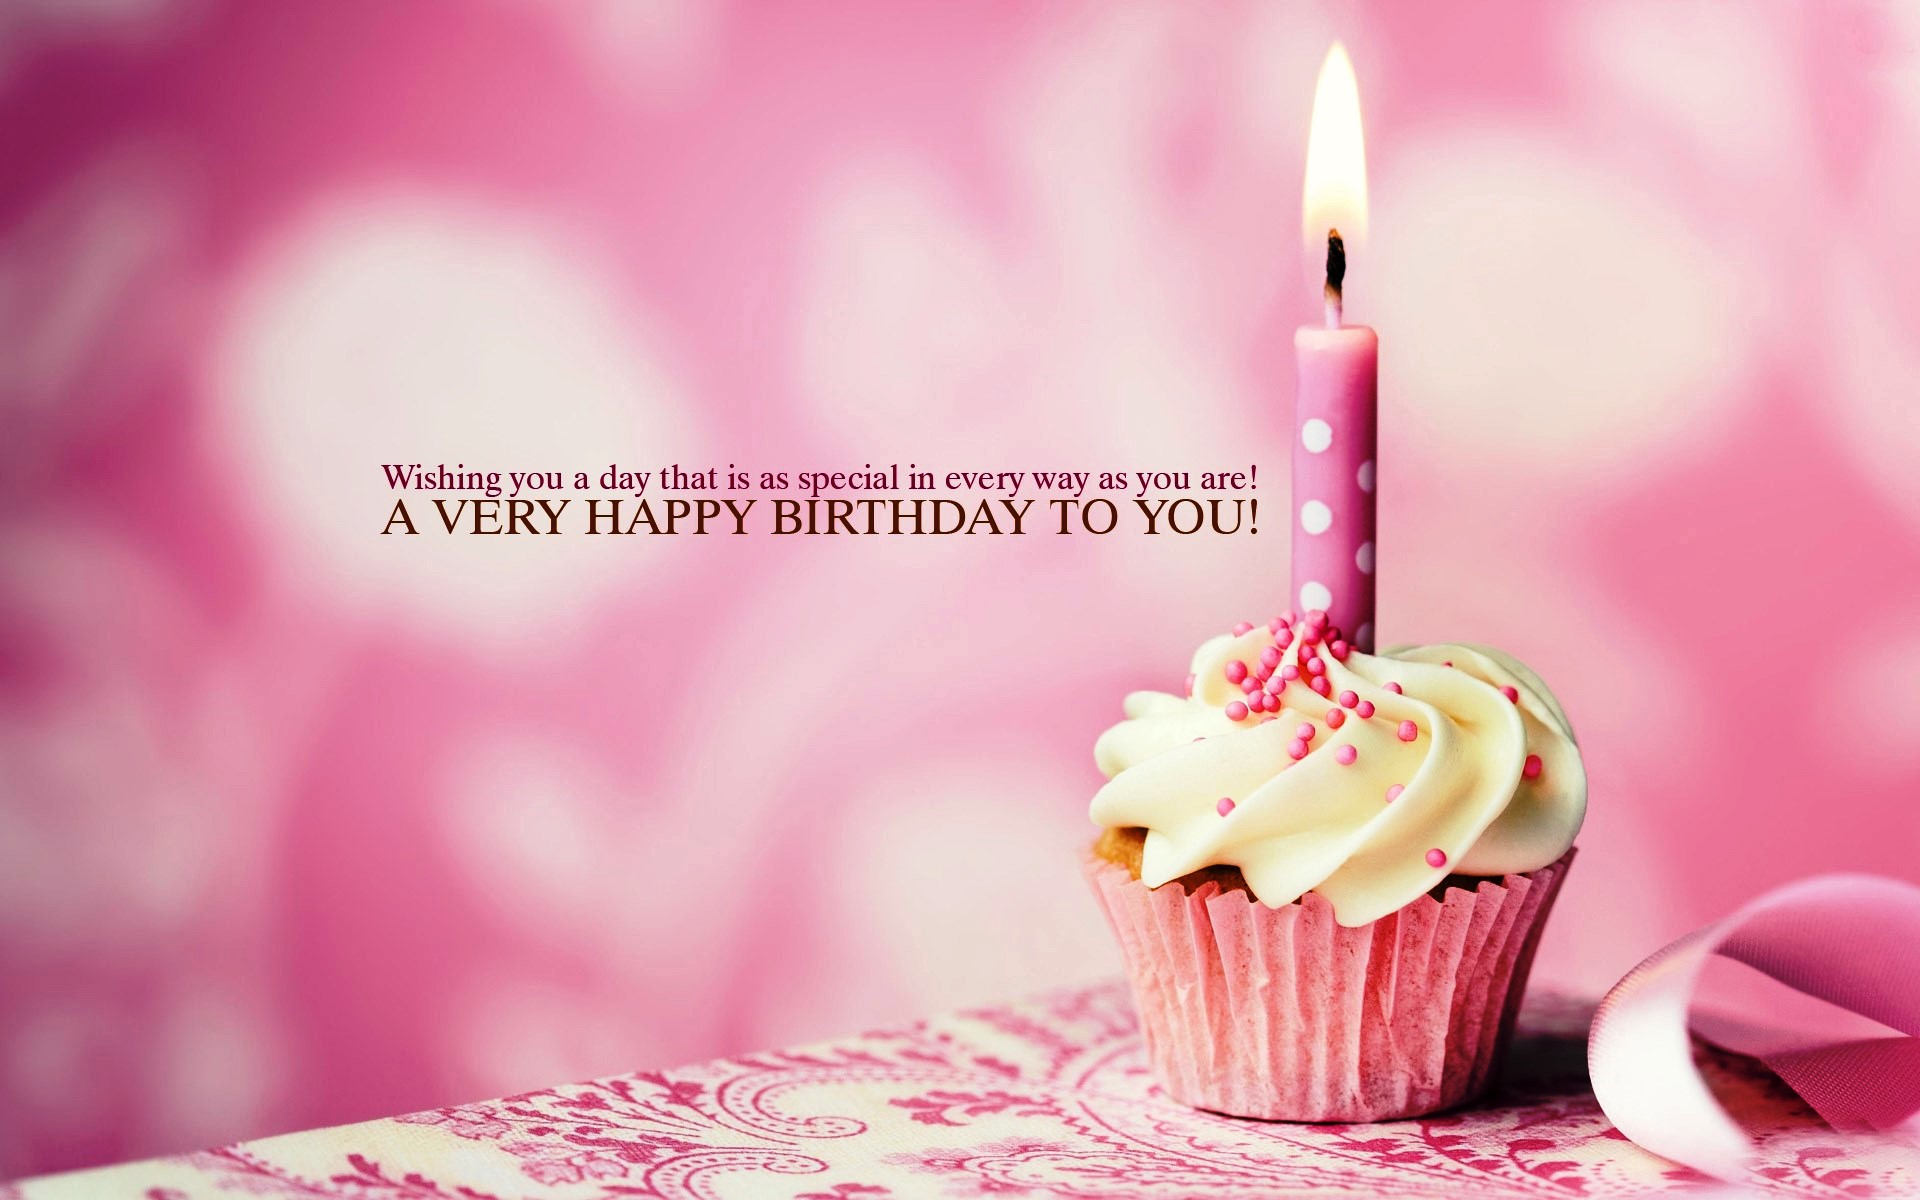 birthday greetings wallpaper ; Quotes-for-Happy-Birthday-Greetings-Desktop-Wallpapers-67198480